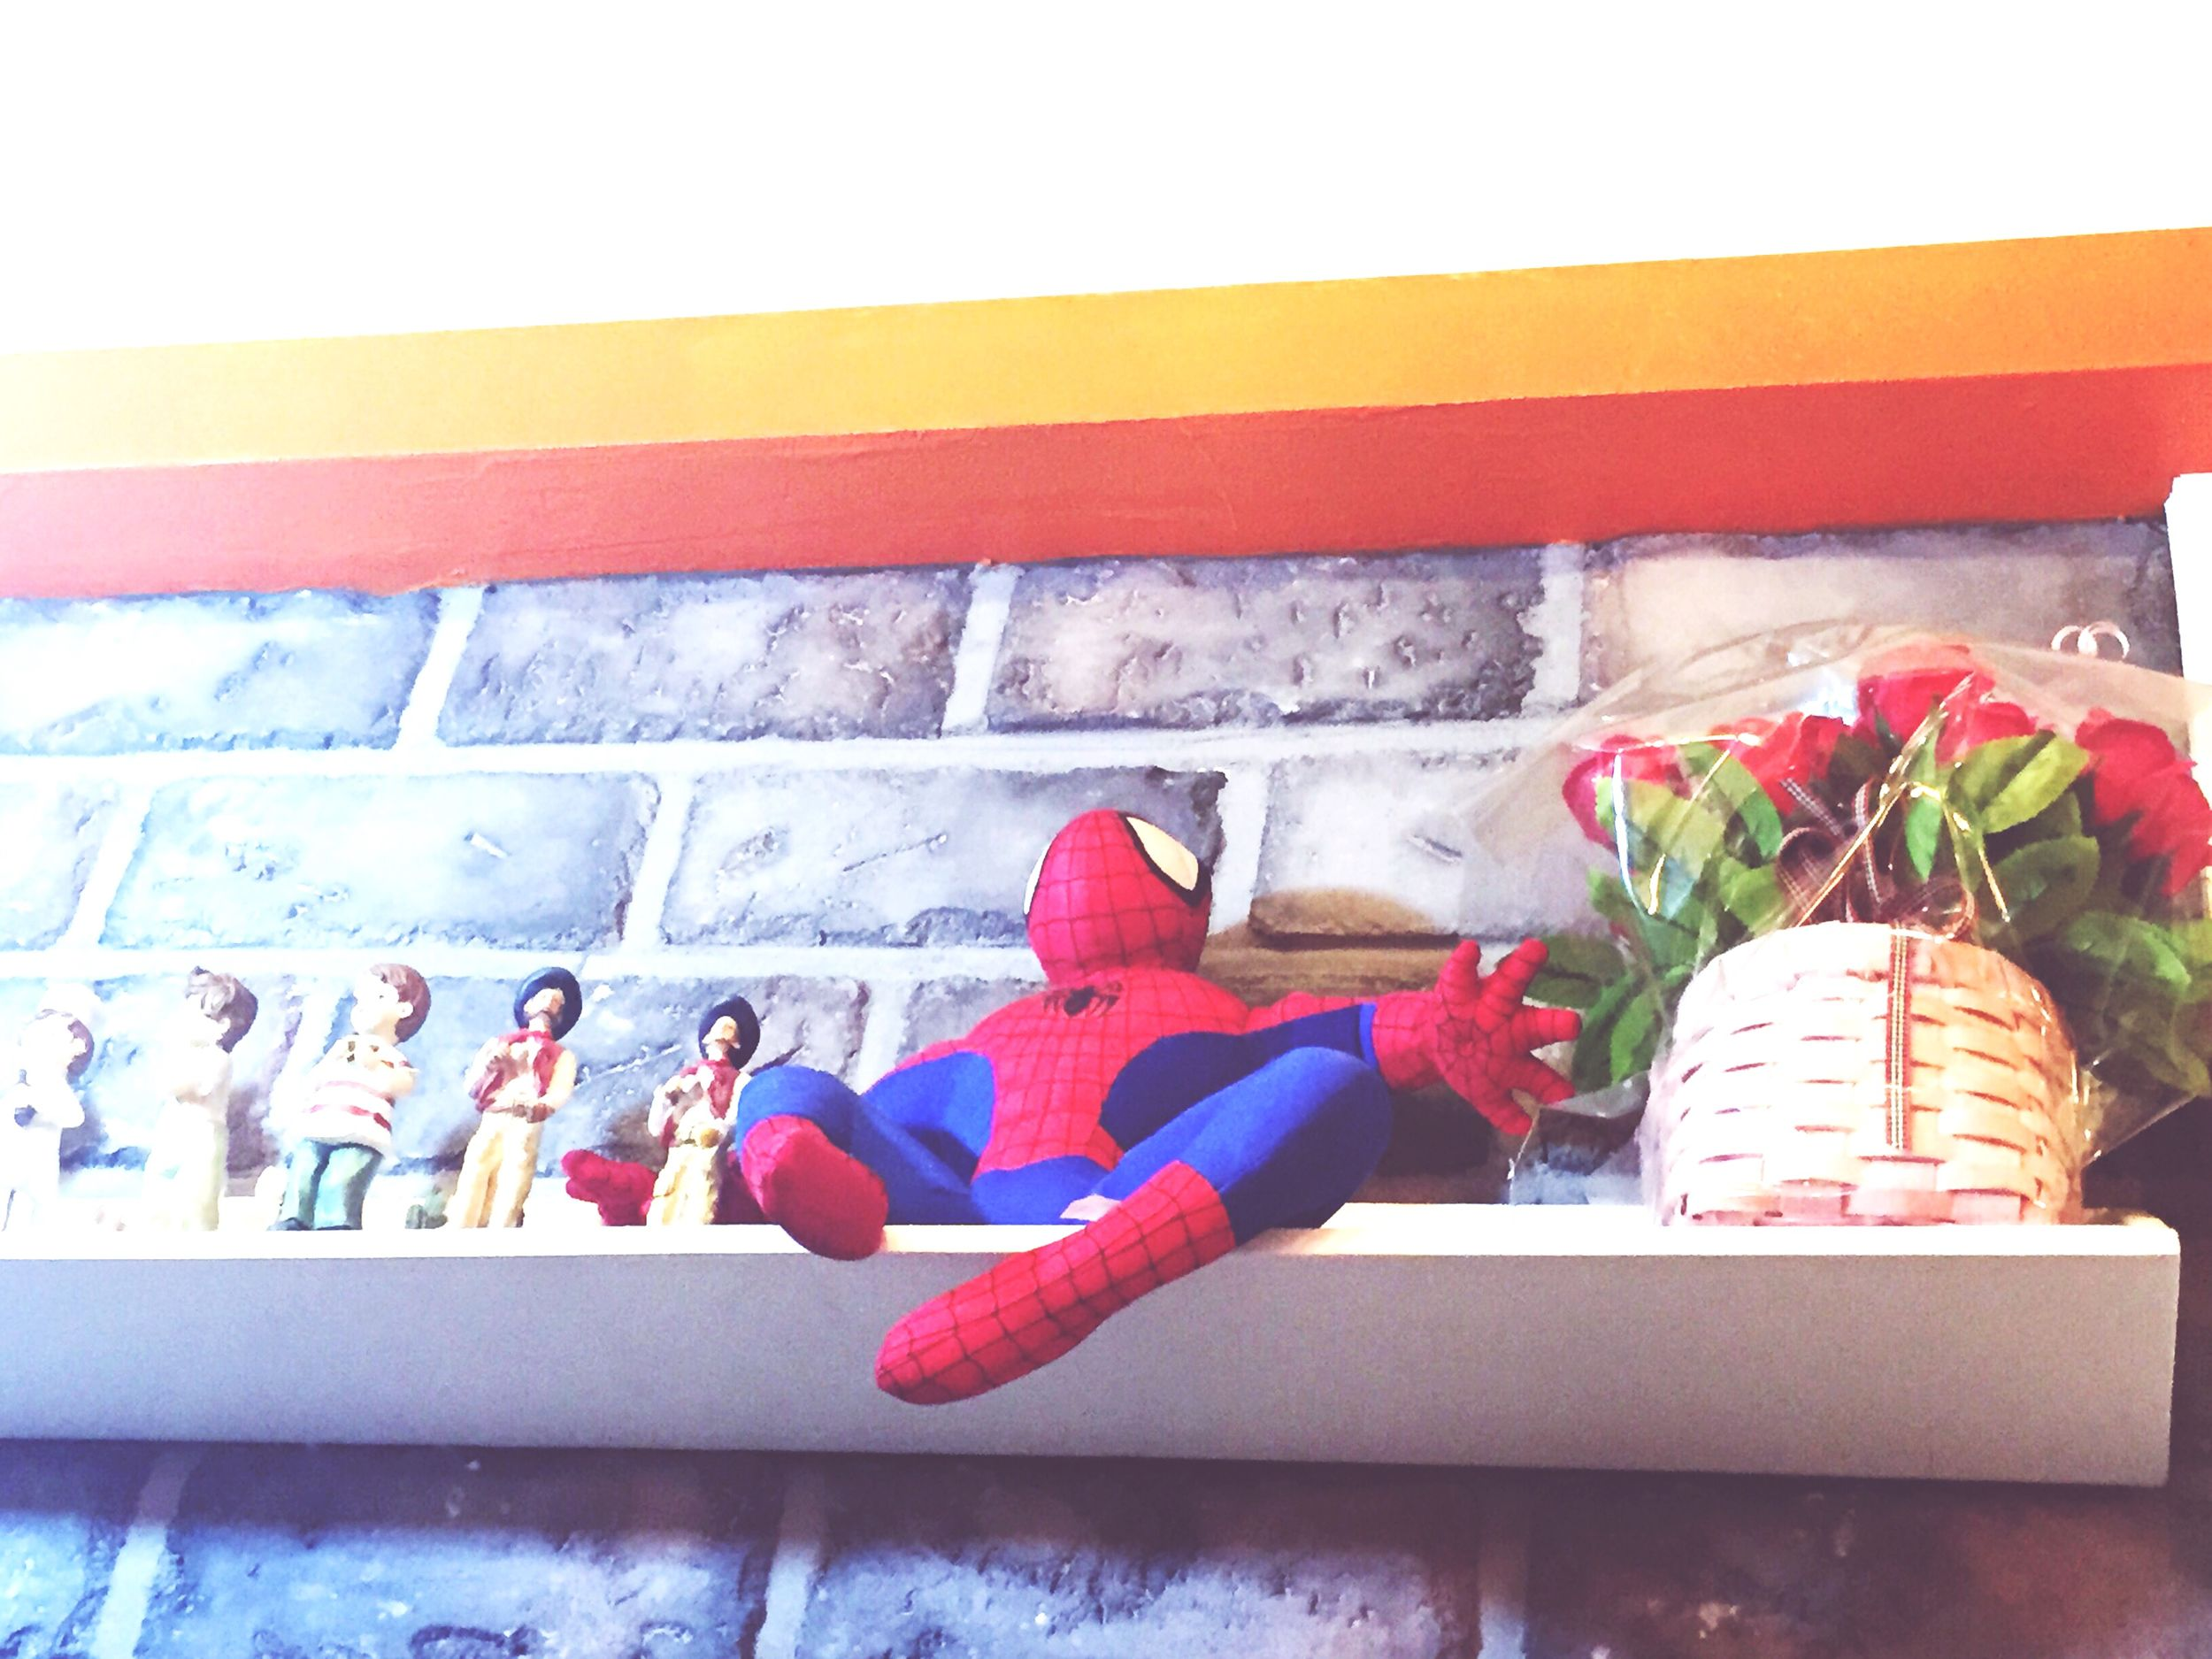 Spidermanman] Where A U? Need heroes!! Find It!!!!